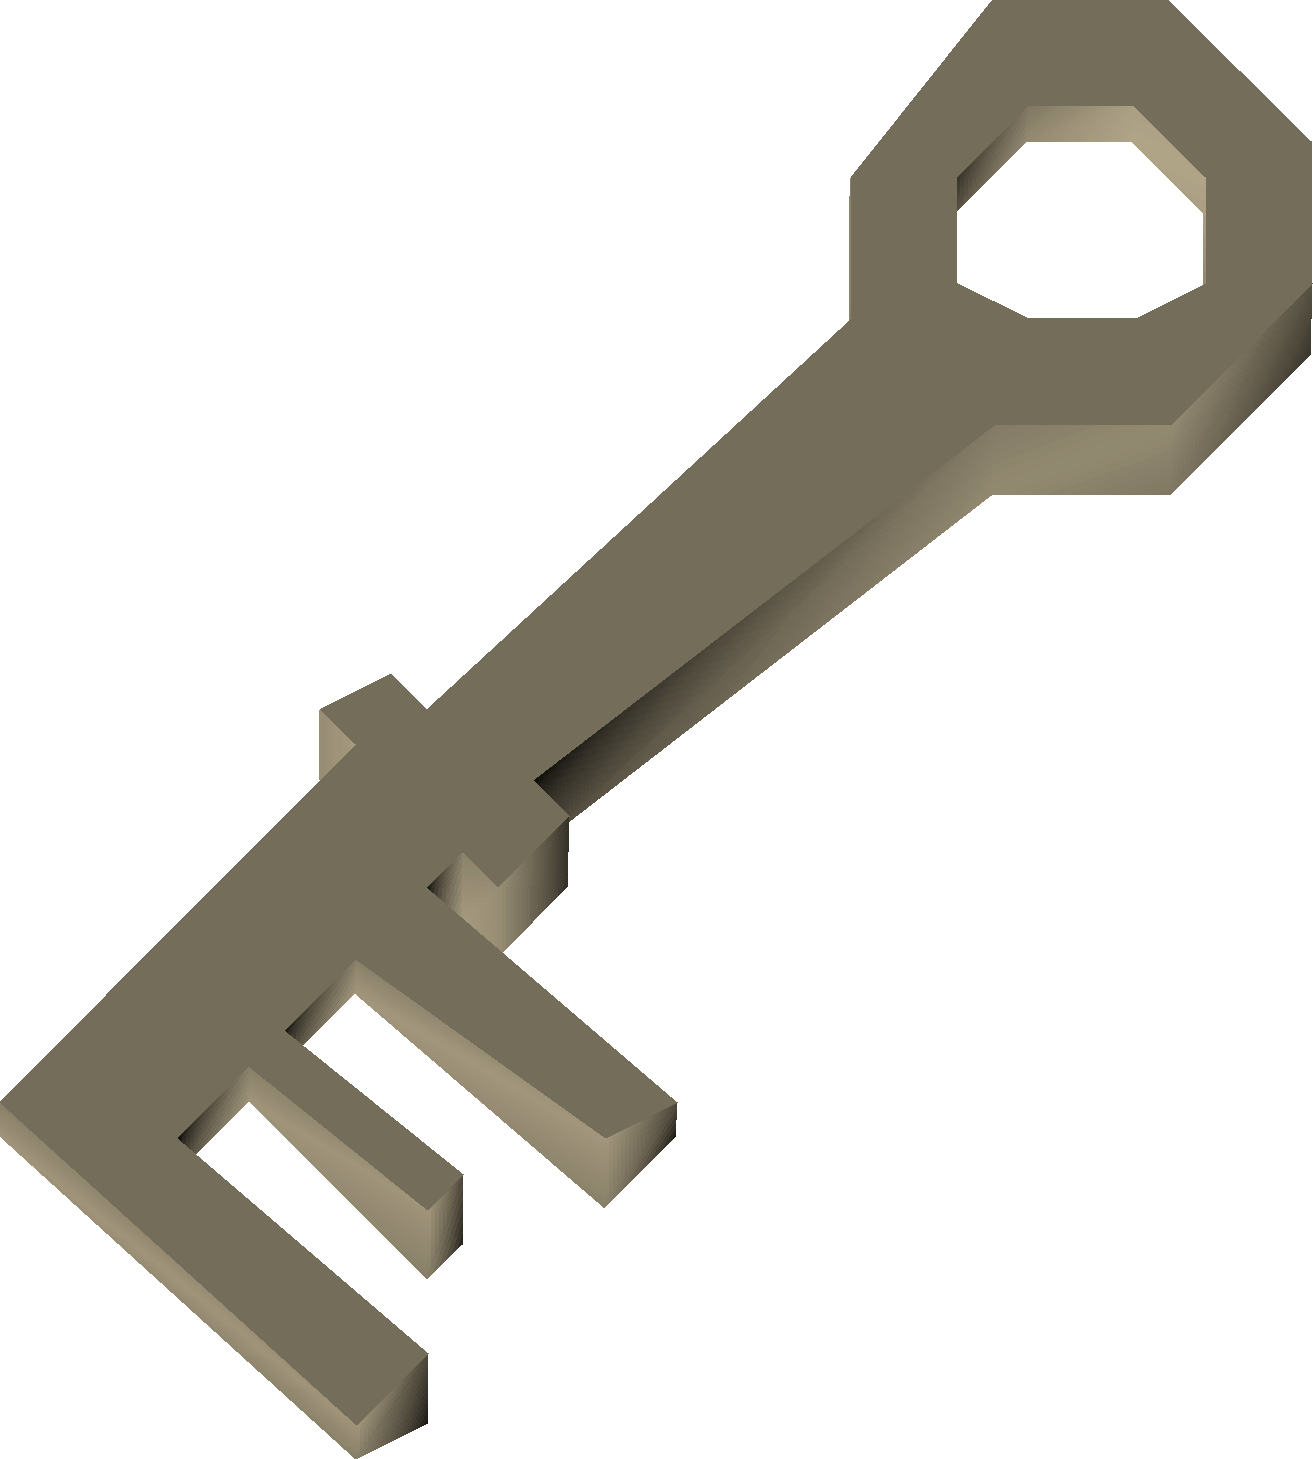 File:Cell door key detail.png